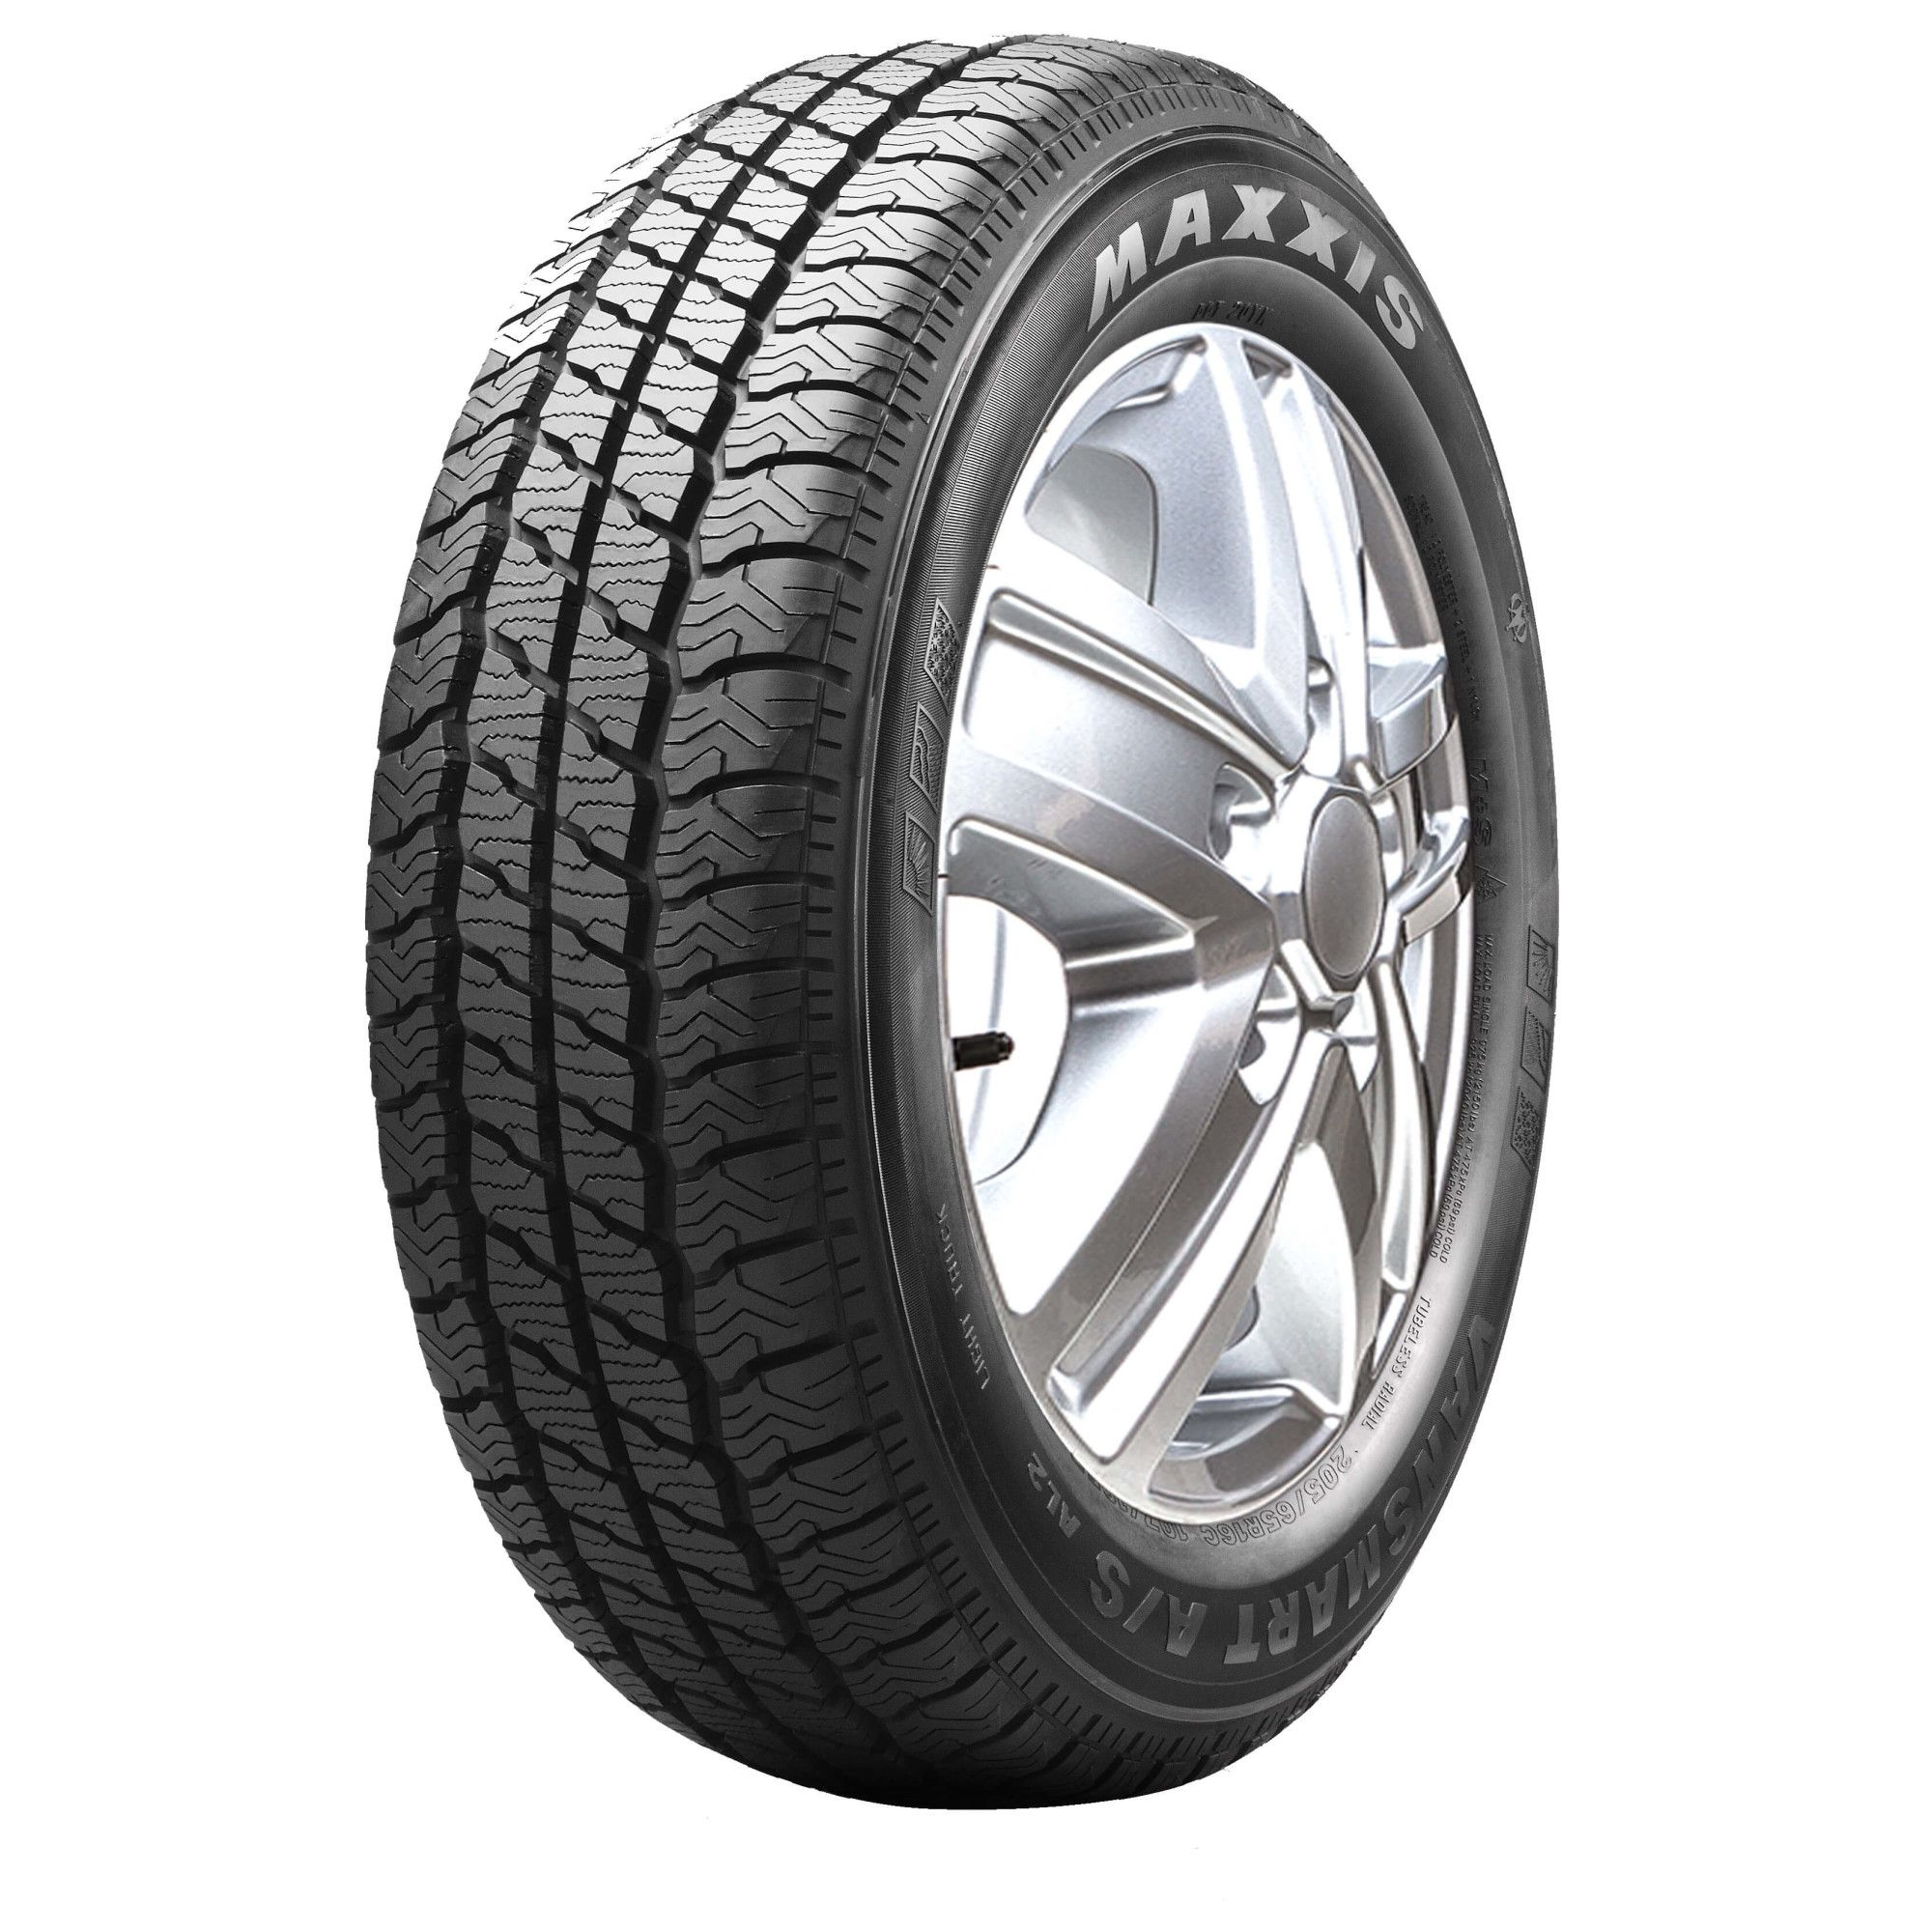 Anvelopa All Season Maxxis Al2 All Season 145/R15 72T